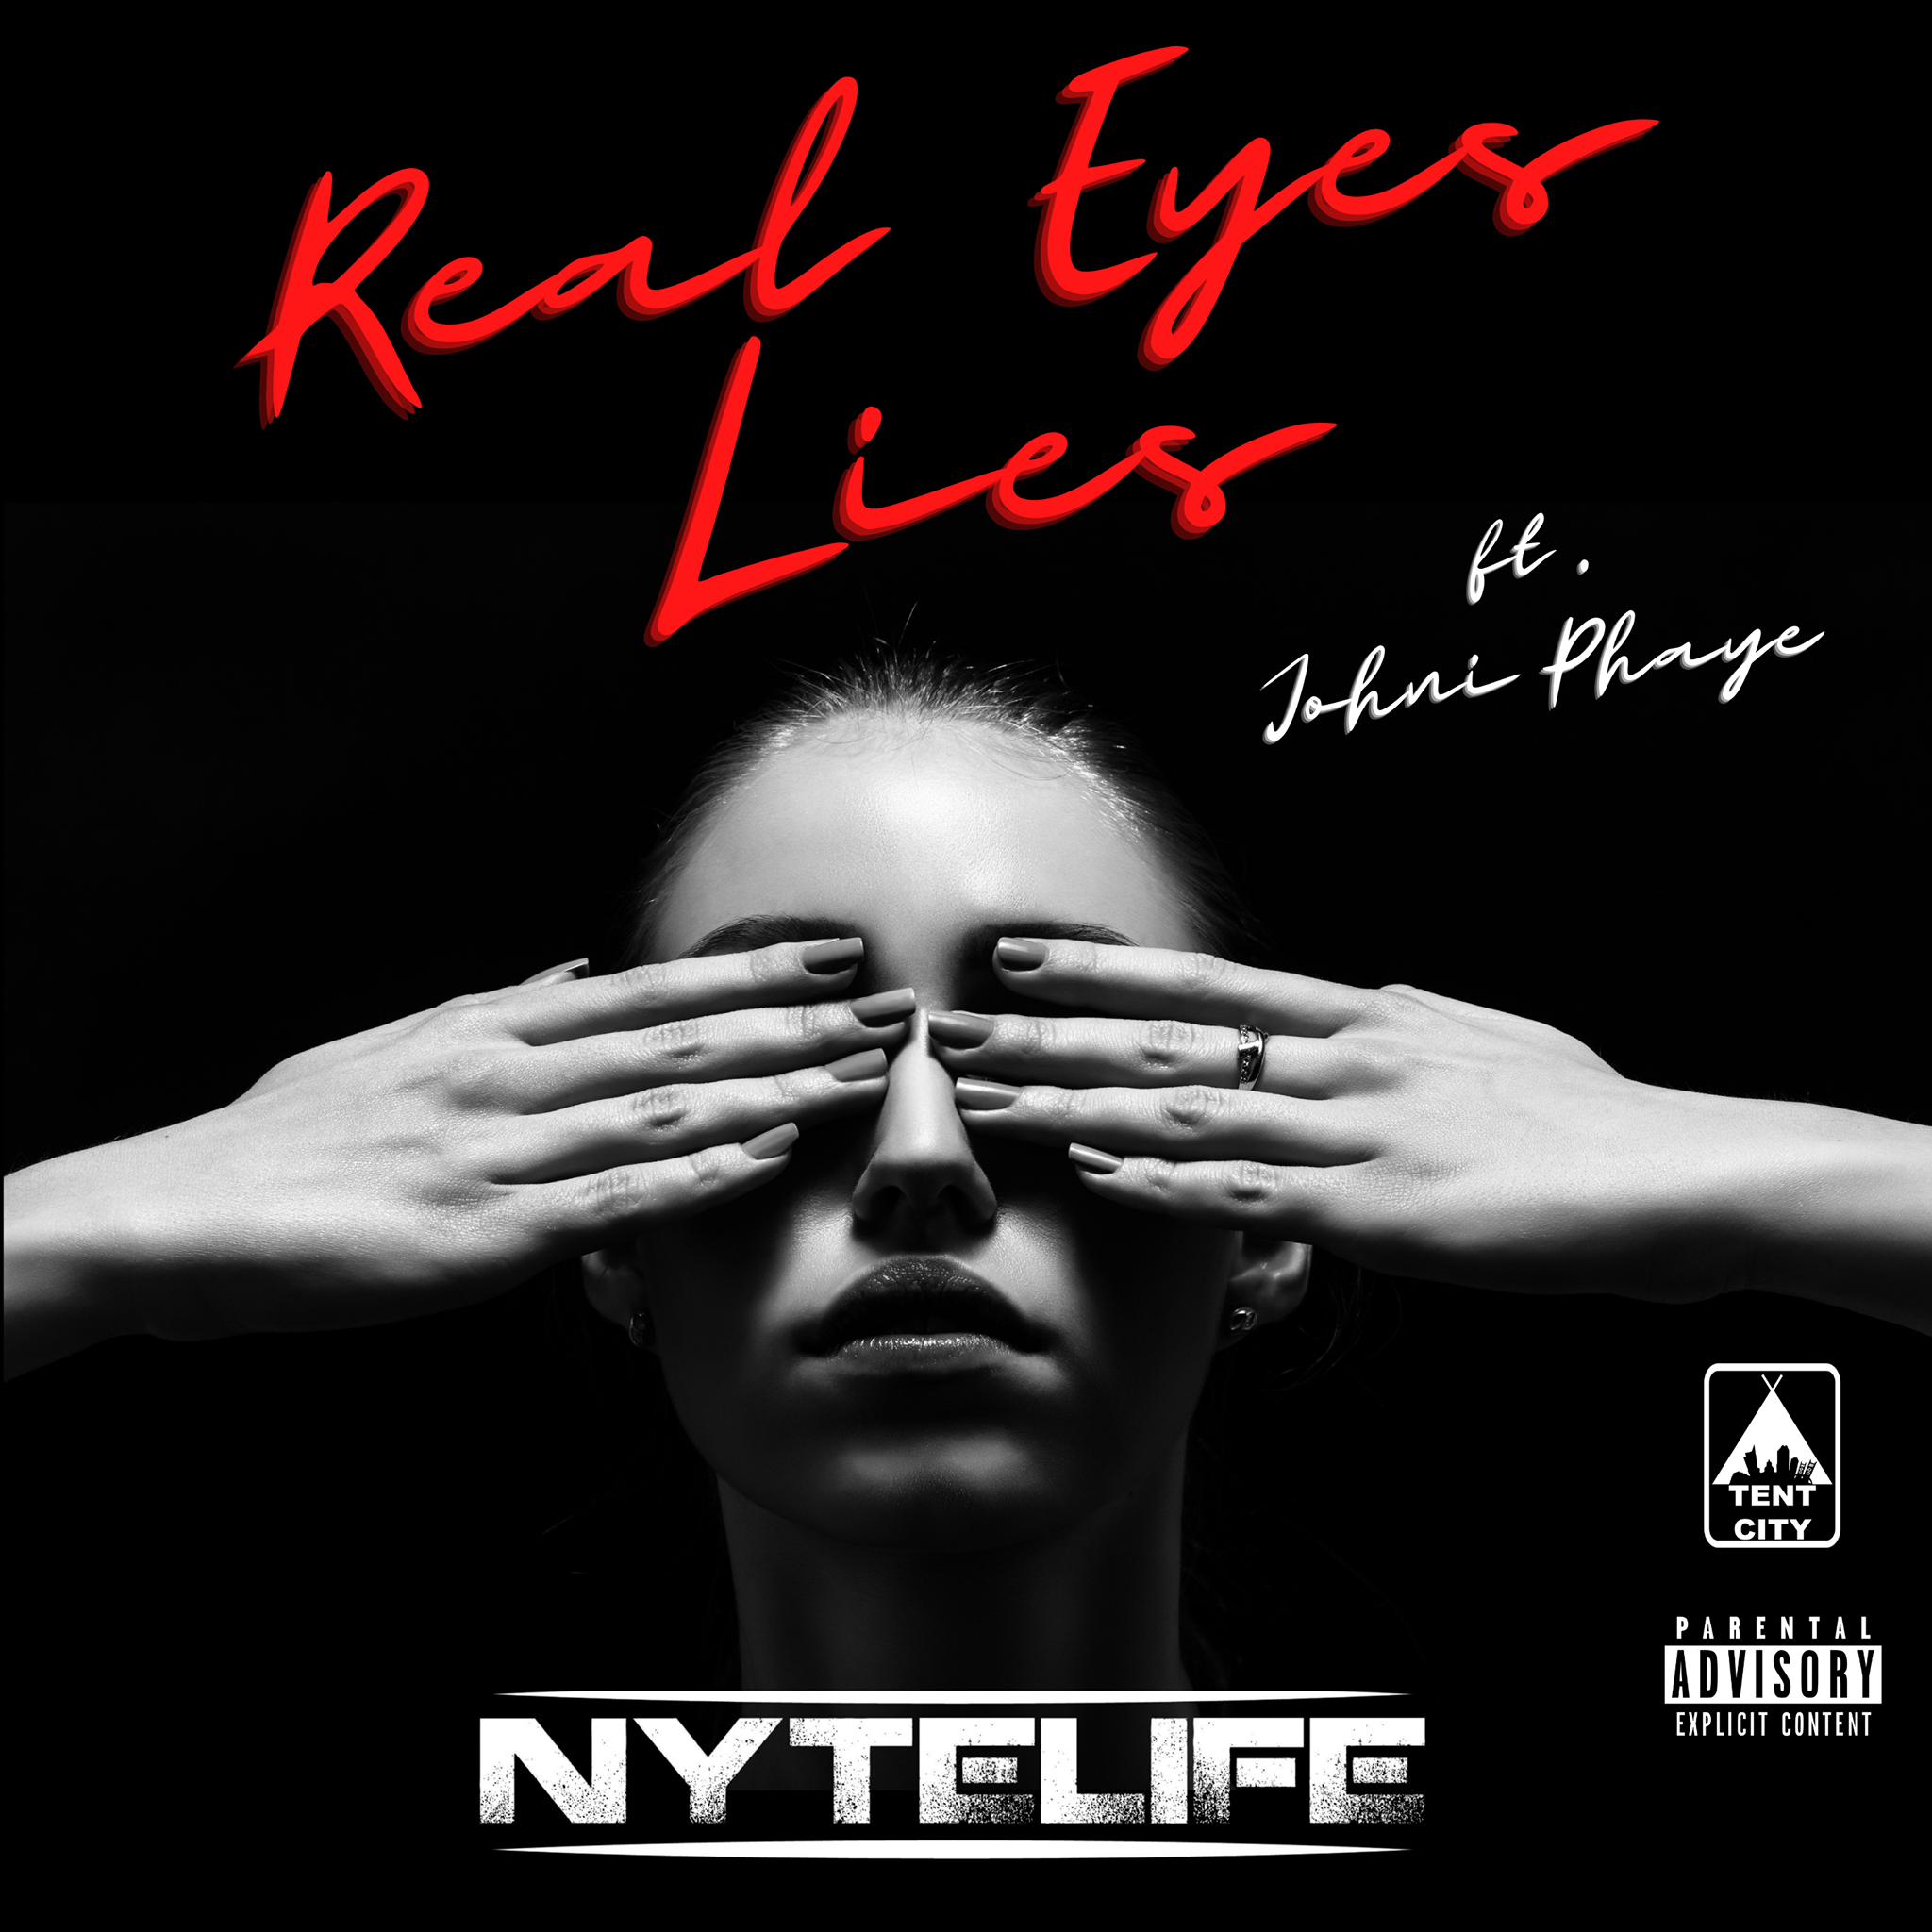 Real Eyes Lies by Nytelife feat. Johni Phaye Image